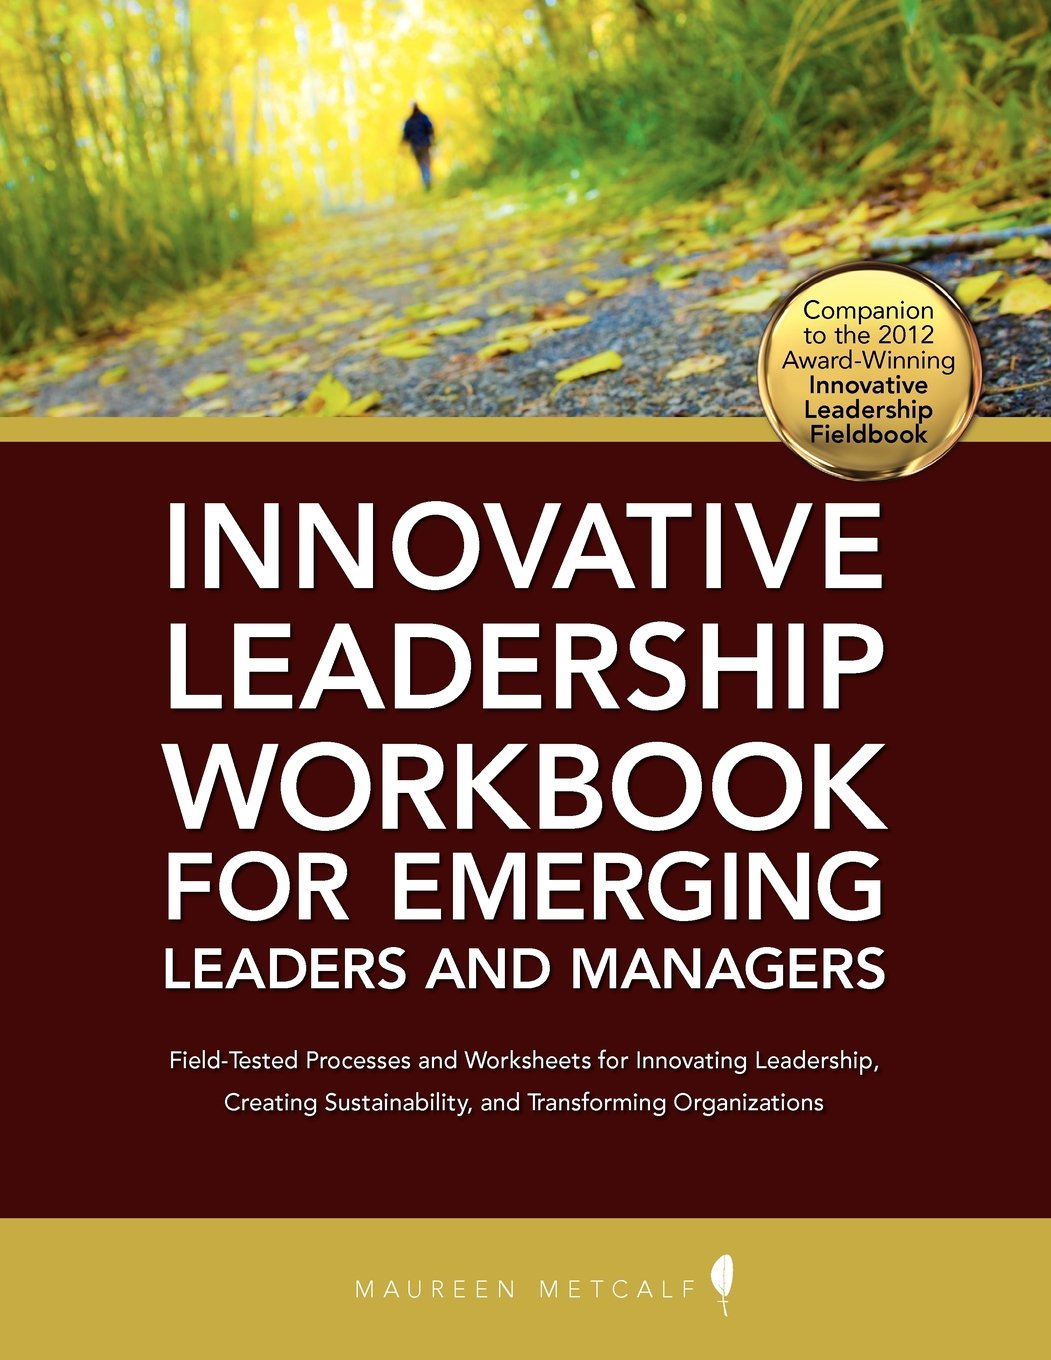 Innovative Leadership Workbook for Emerging Managers and Leaders ...